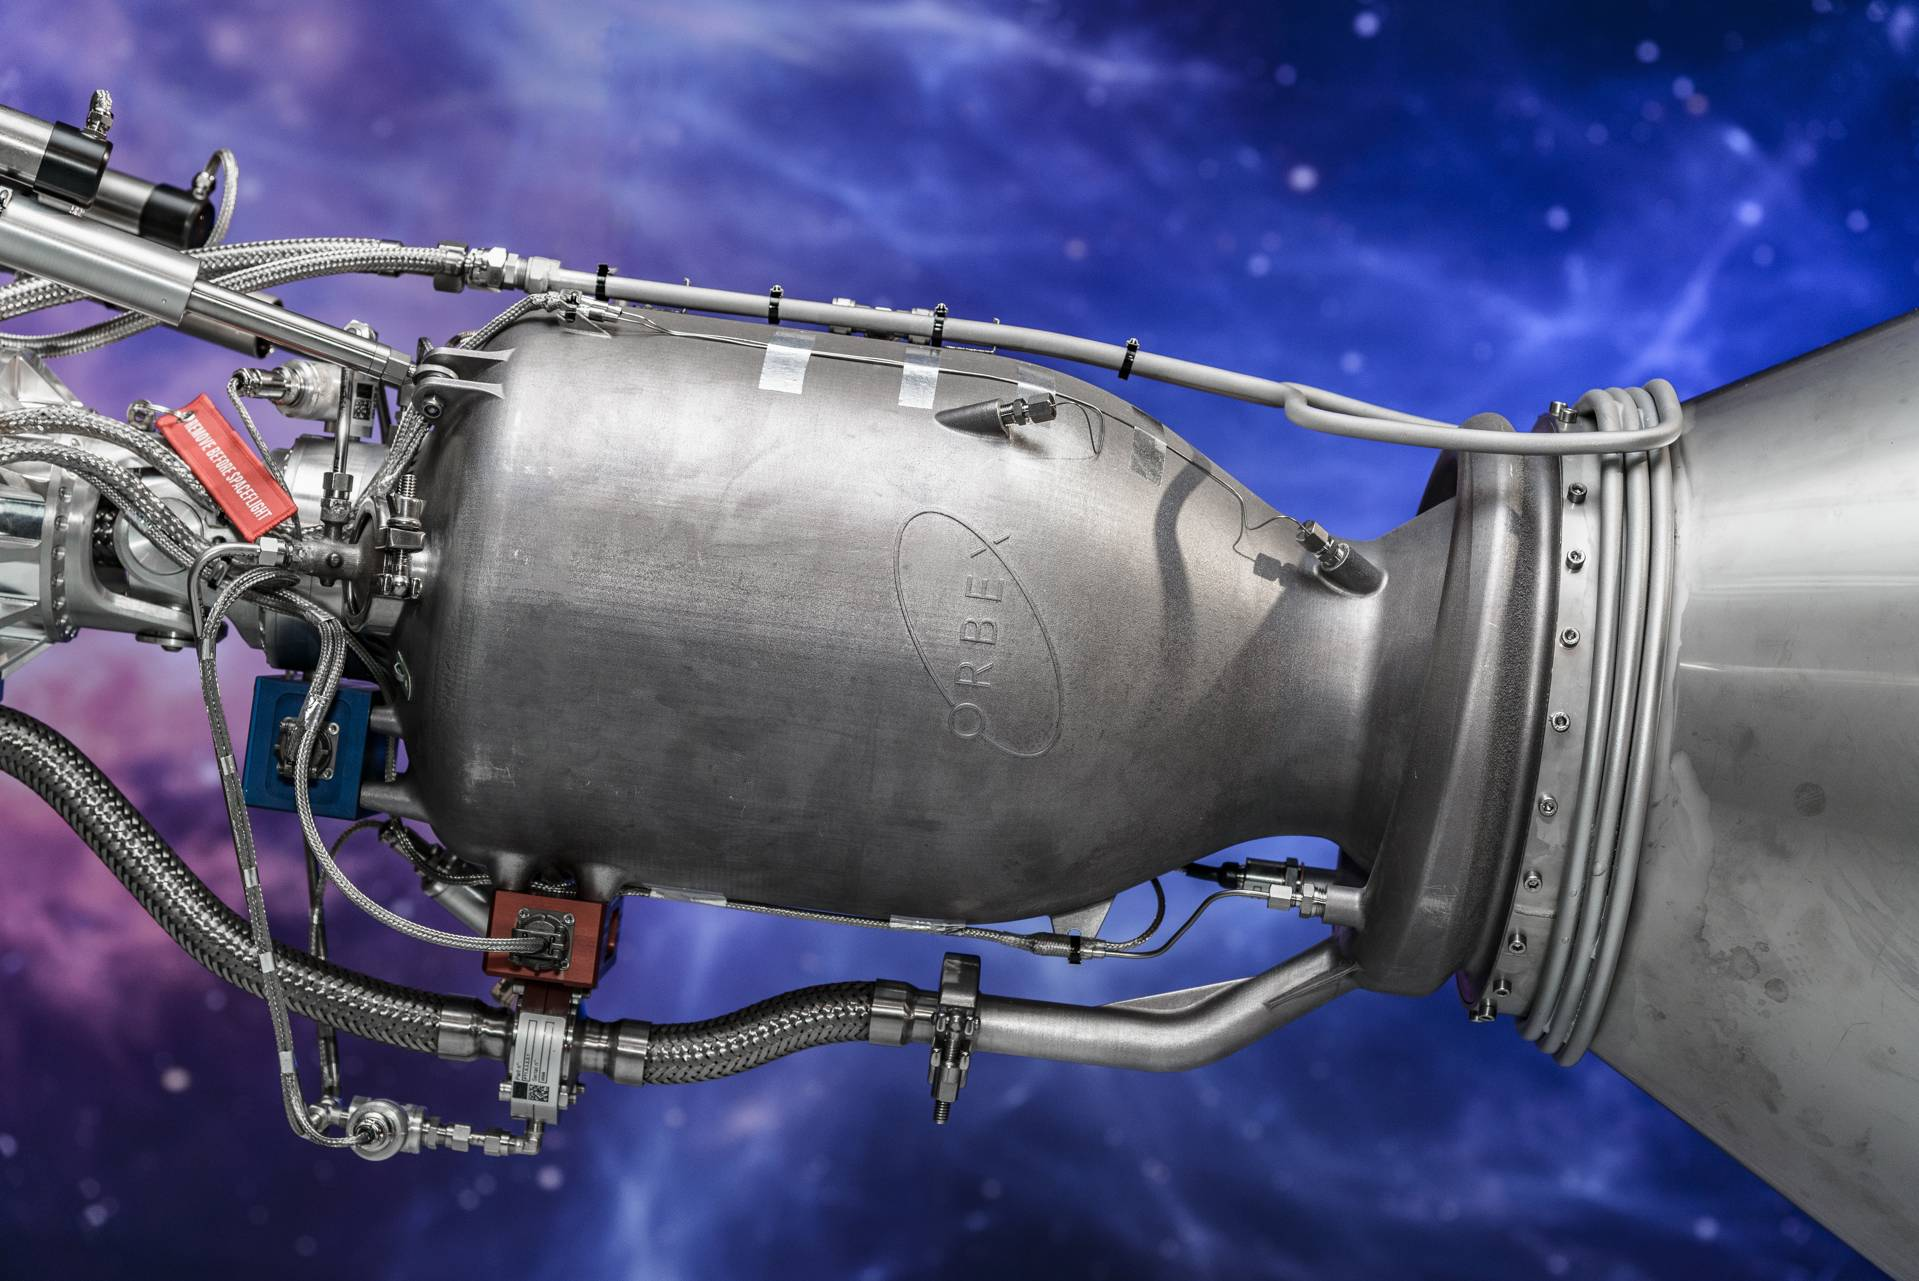 Europe's largest industrial 3D printer will make rocket engines